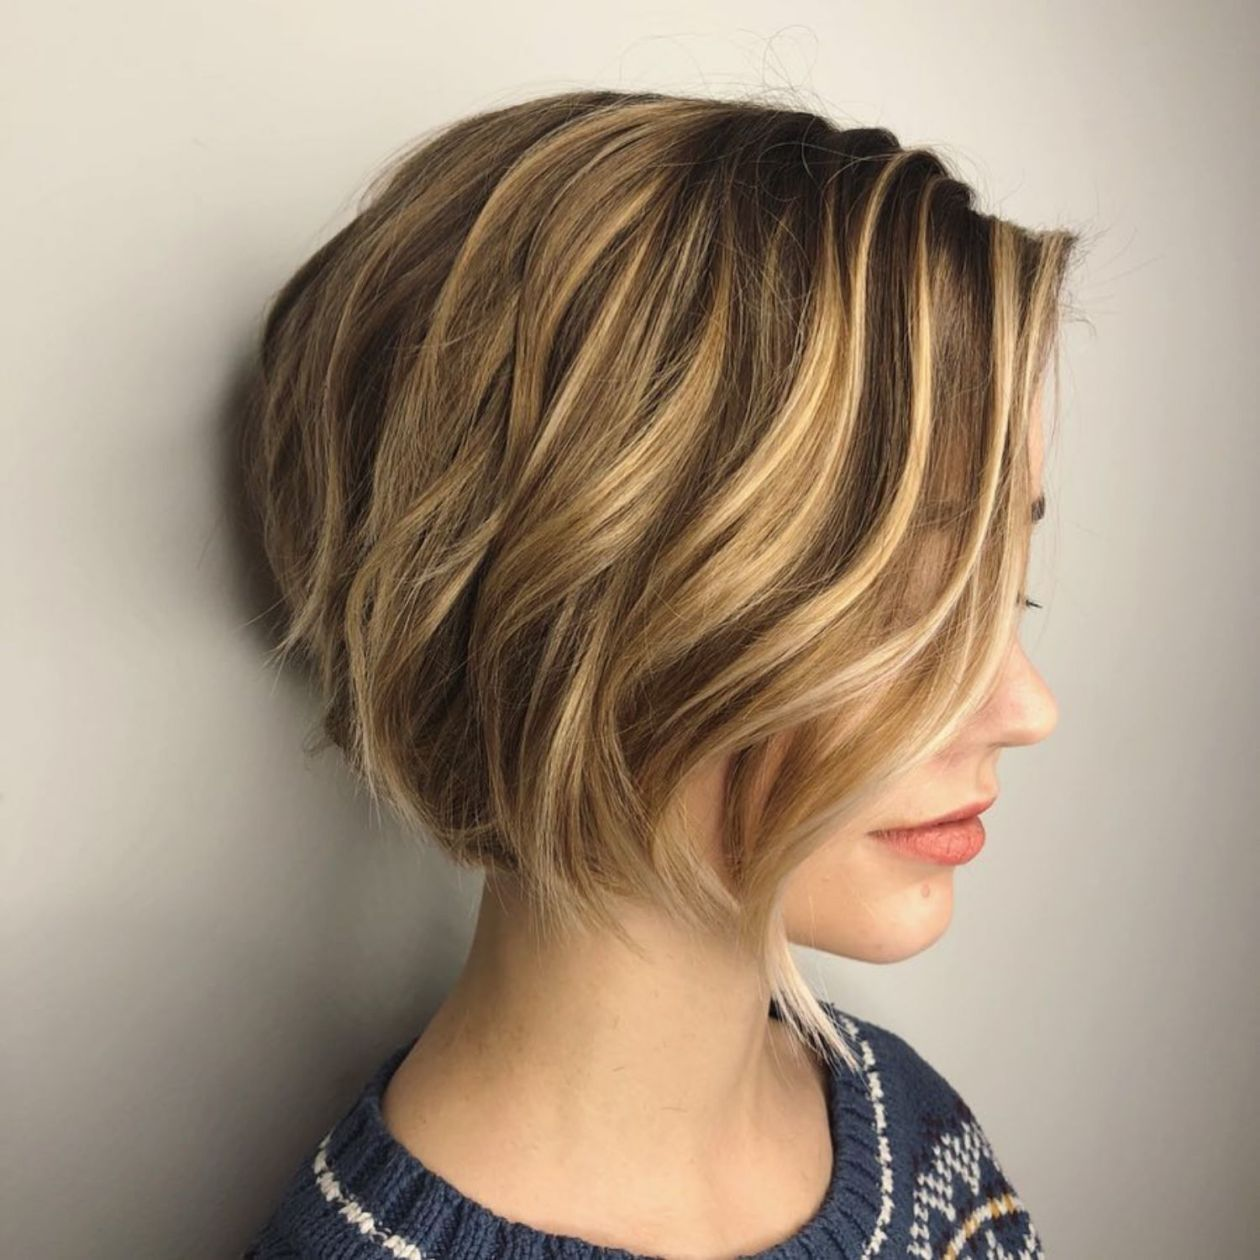 100 Mind Blowing Short Hairstyles For Fine Hair Bob Haircut For